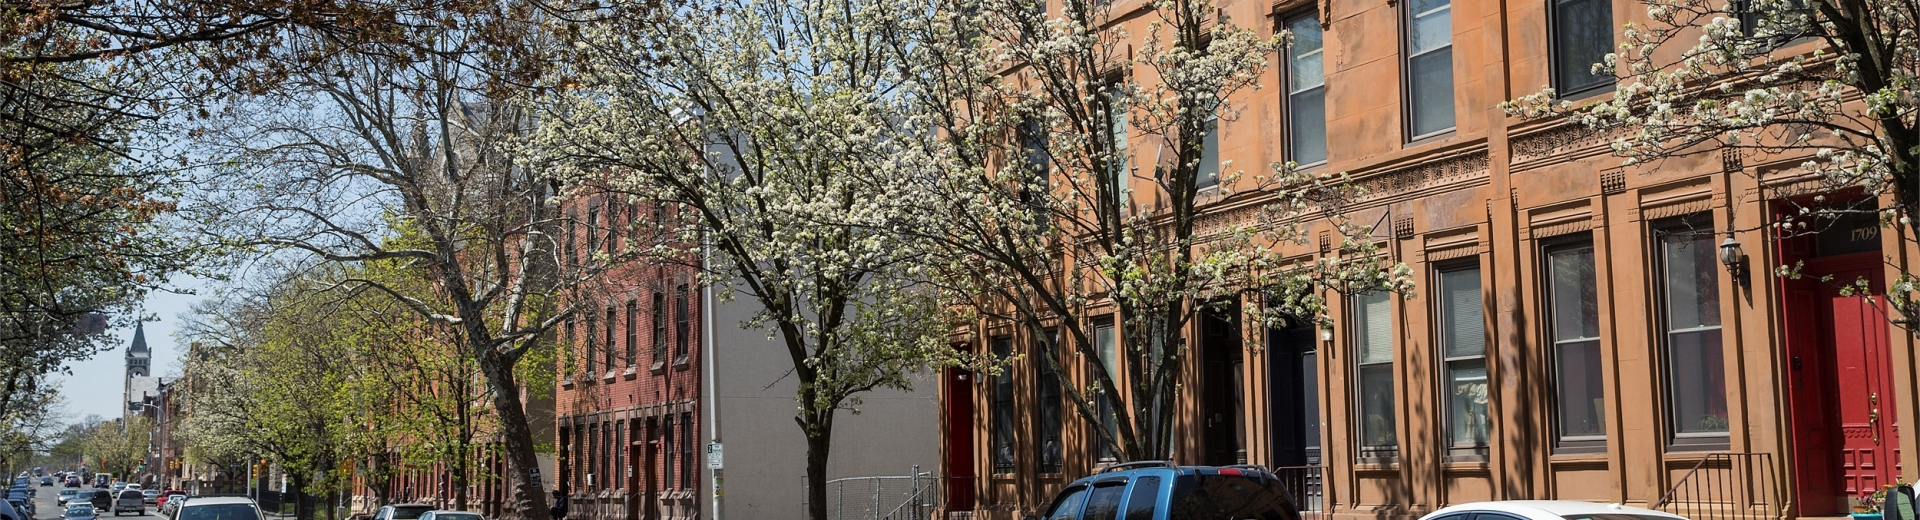 North philly neighborhood street with flowering trees